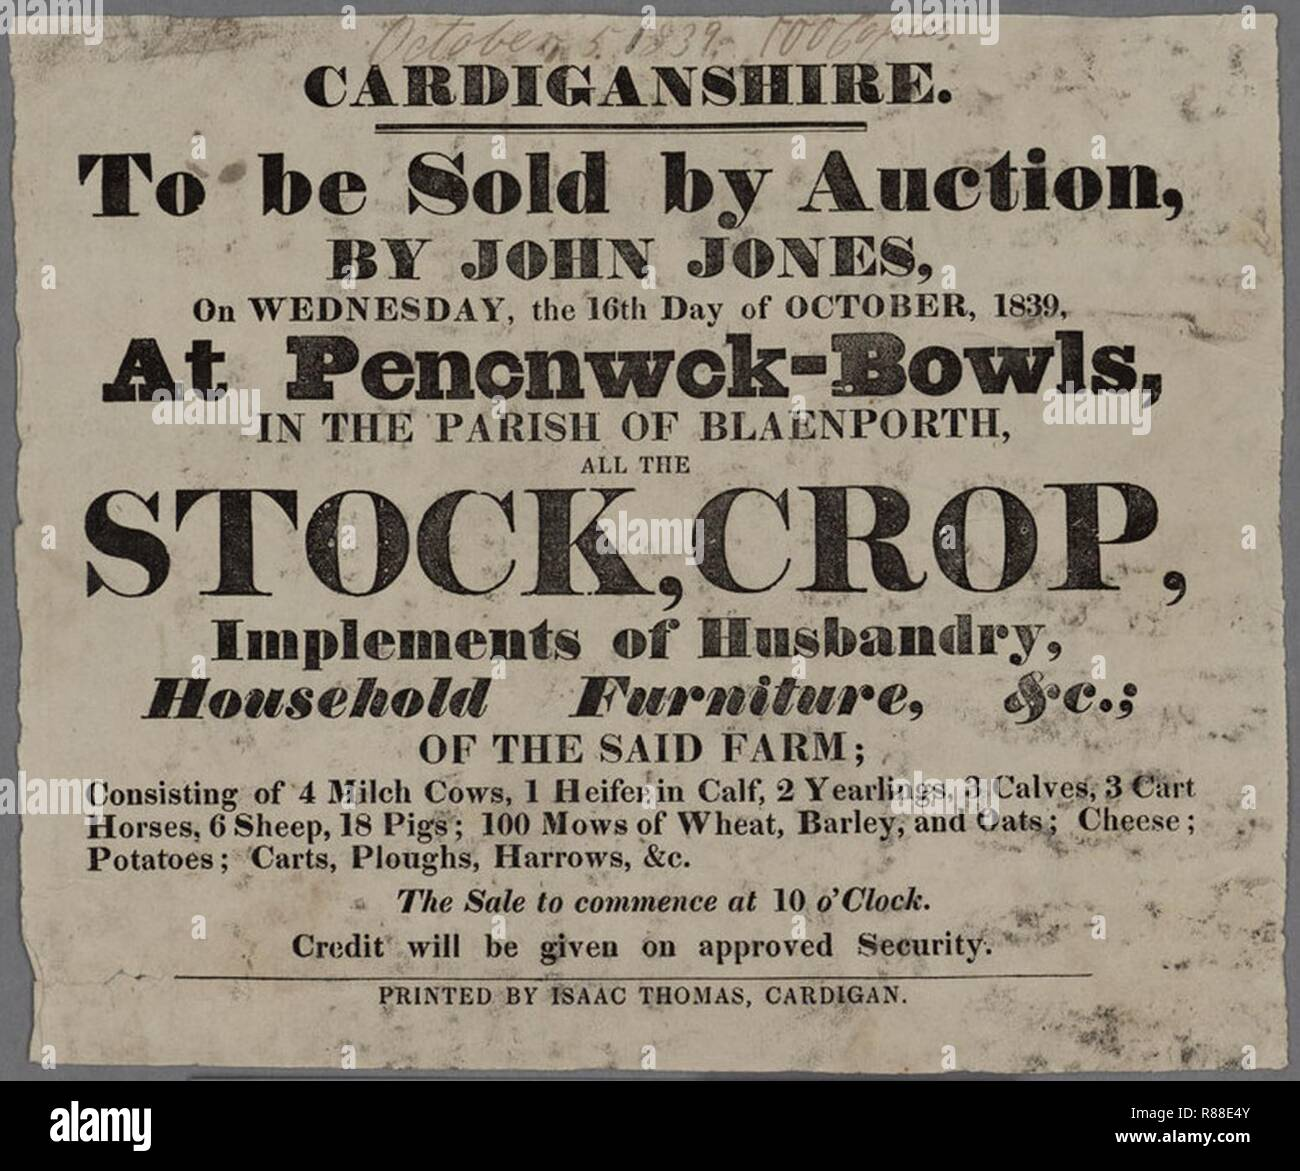 Cardiganshire To be sold by Auction Pencnwck-Bowls Crop 1839. - Stock Image